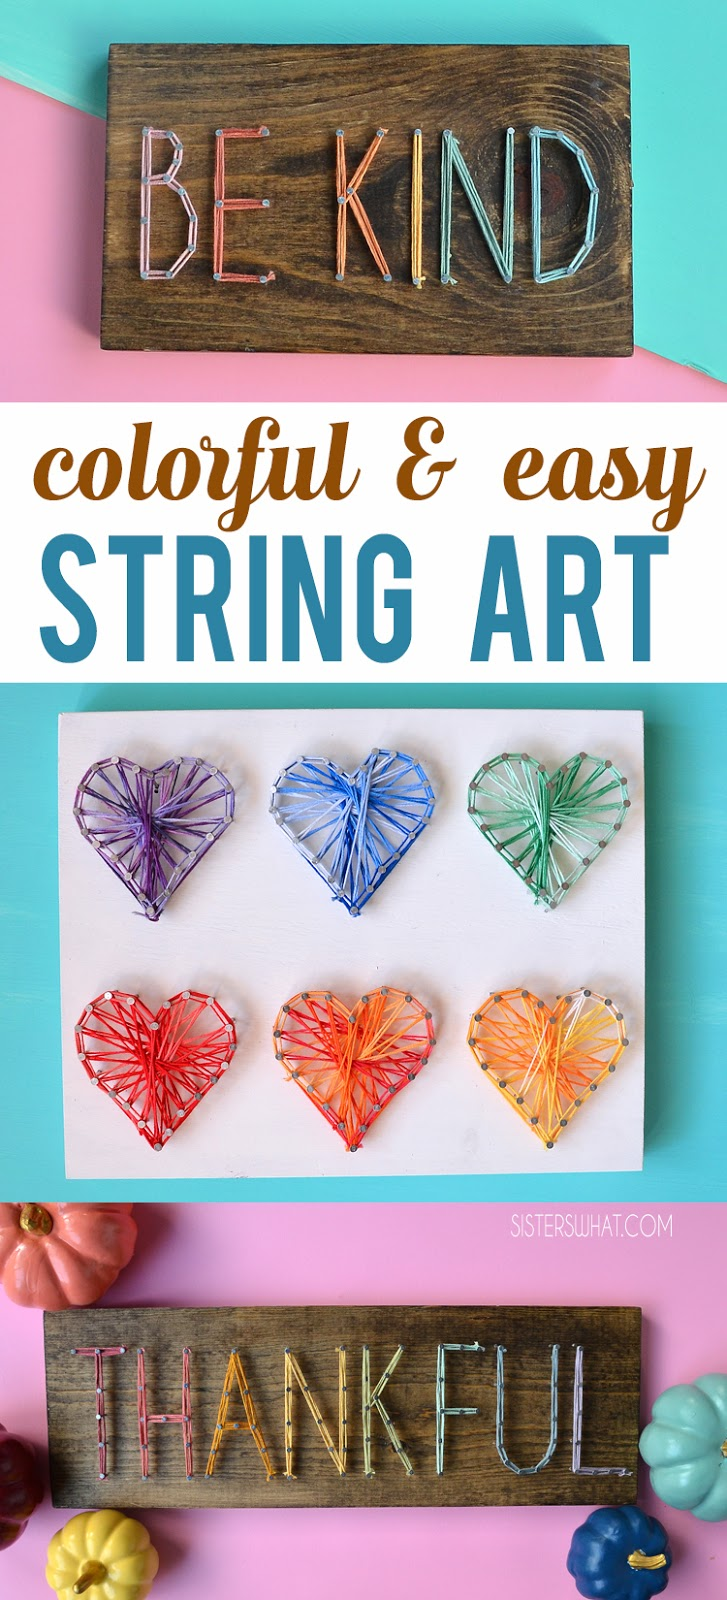 easy inspirational string art word pattern and crafty decoration